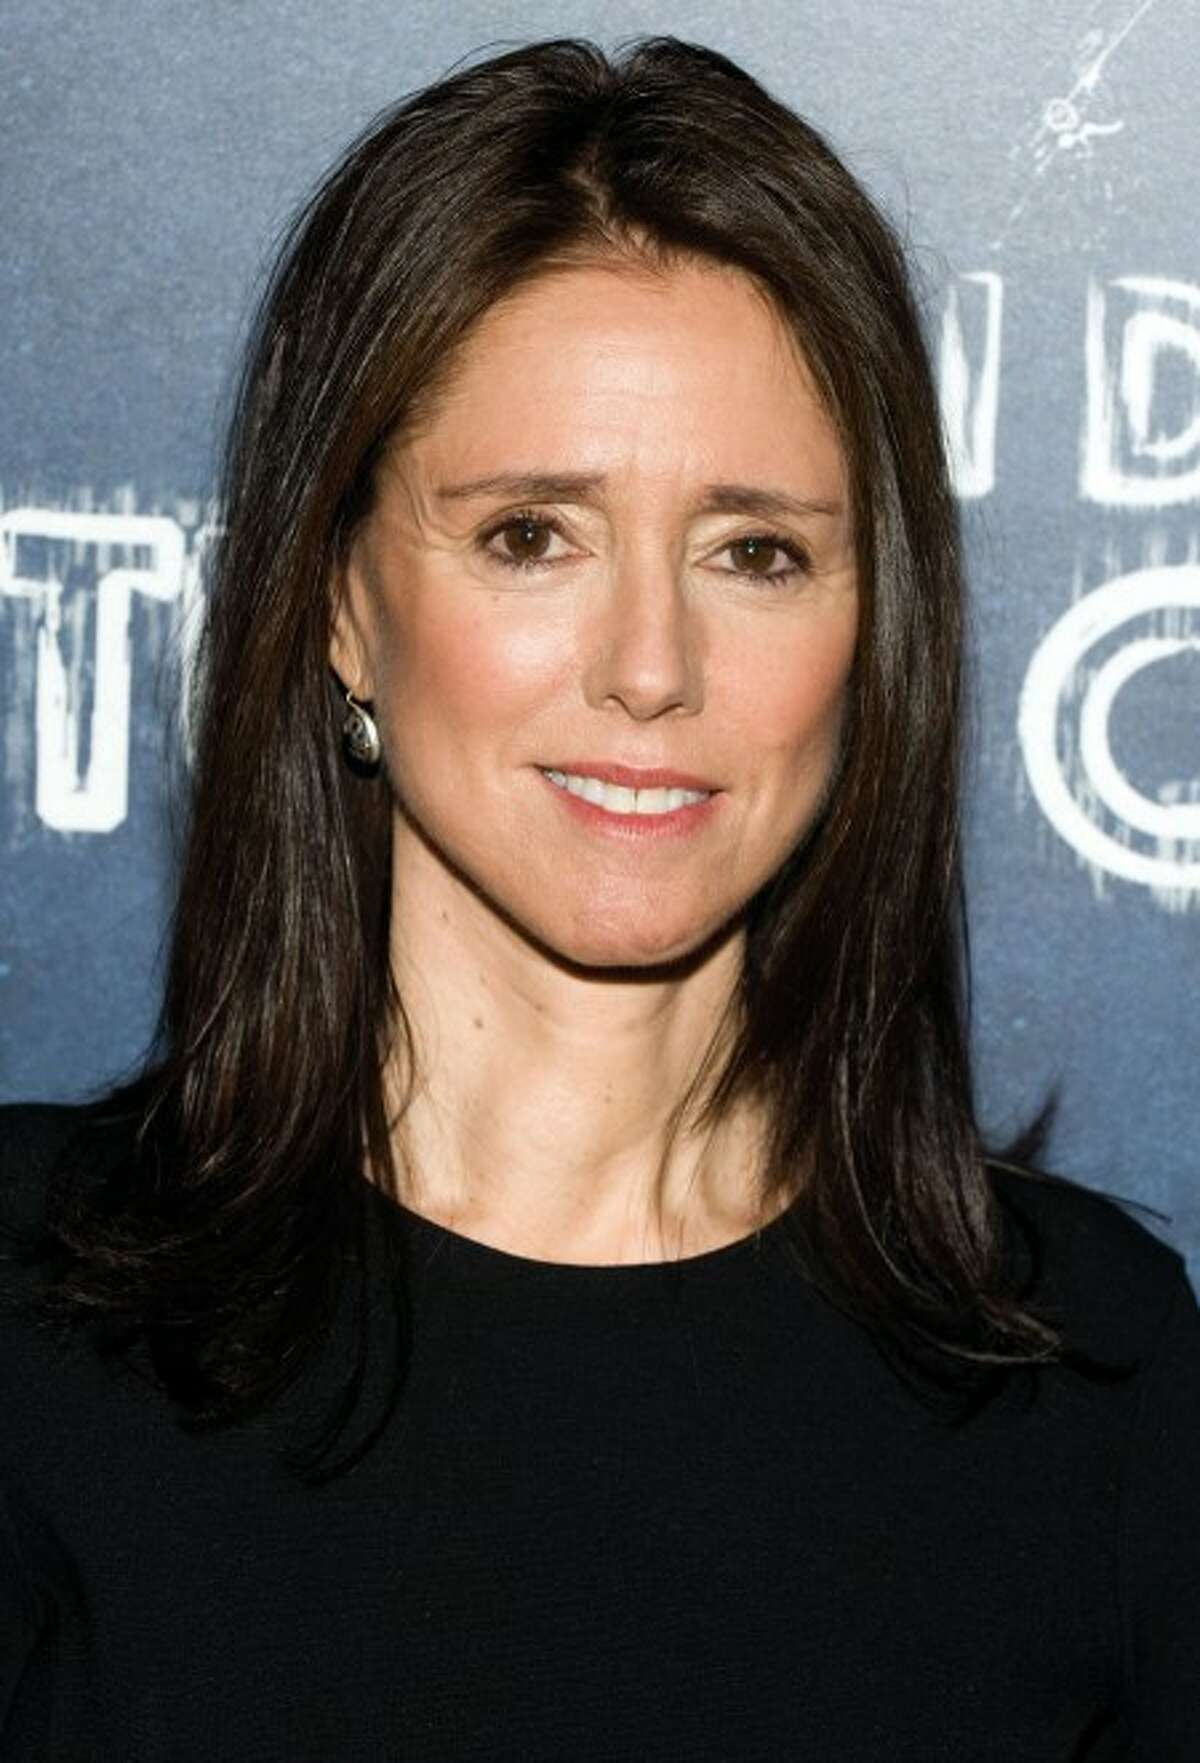 FILE - In this Sept. 10, 2010 file photo, Julie Taymor, director of the musical